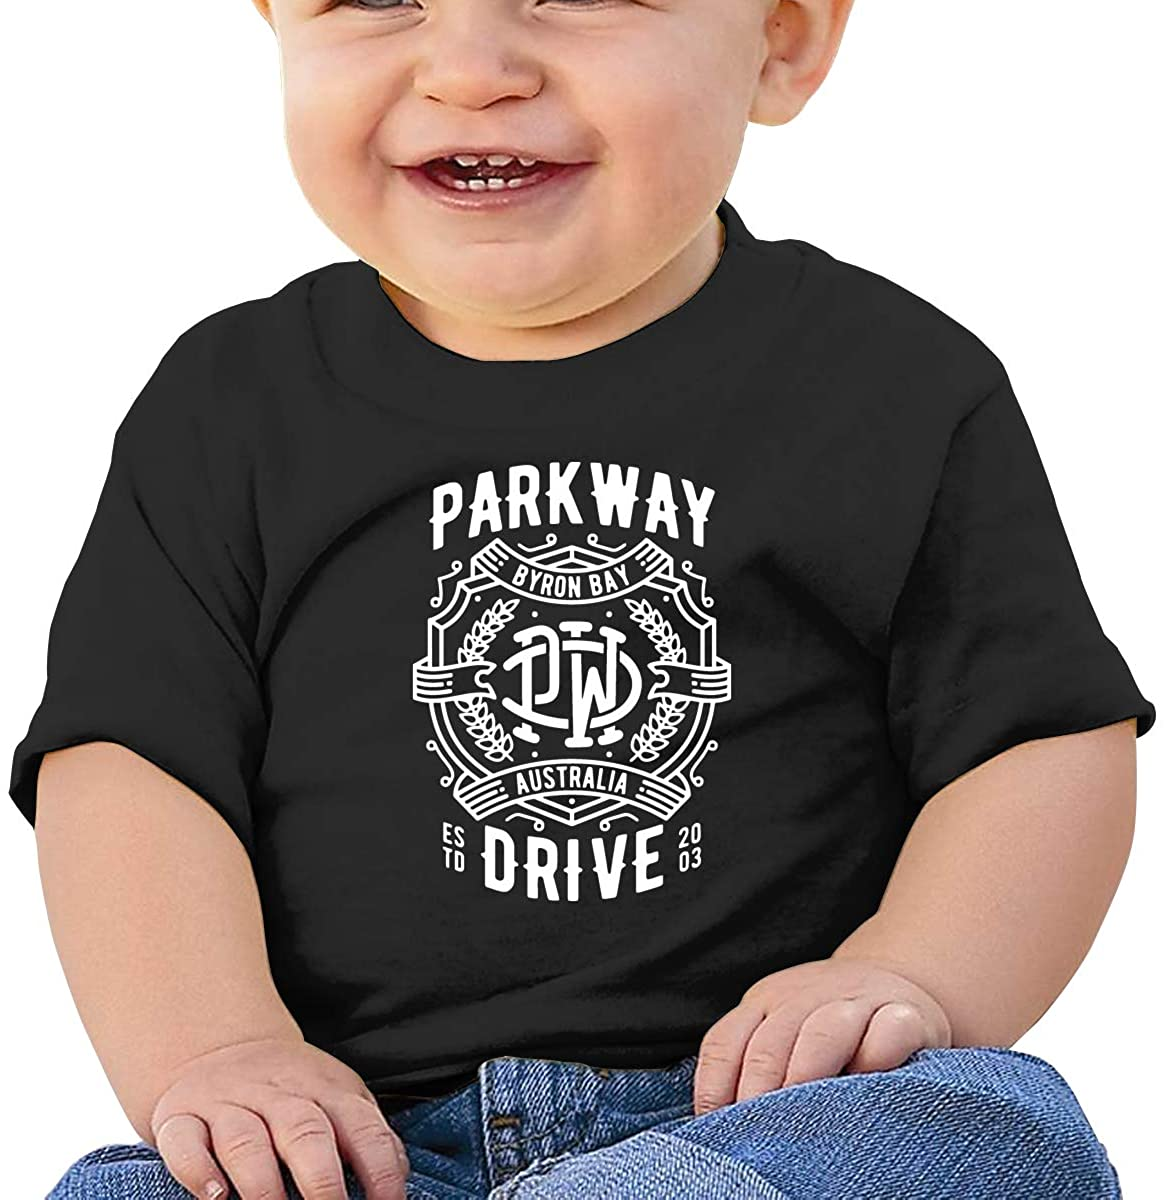 Parkway Drive Comfortable and Breathable Skin-Friendly Baby Short-Sleeved T-Shirt Black